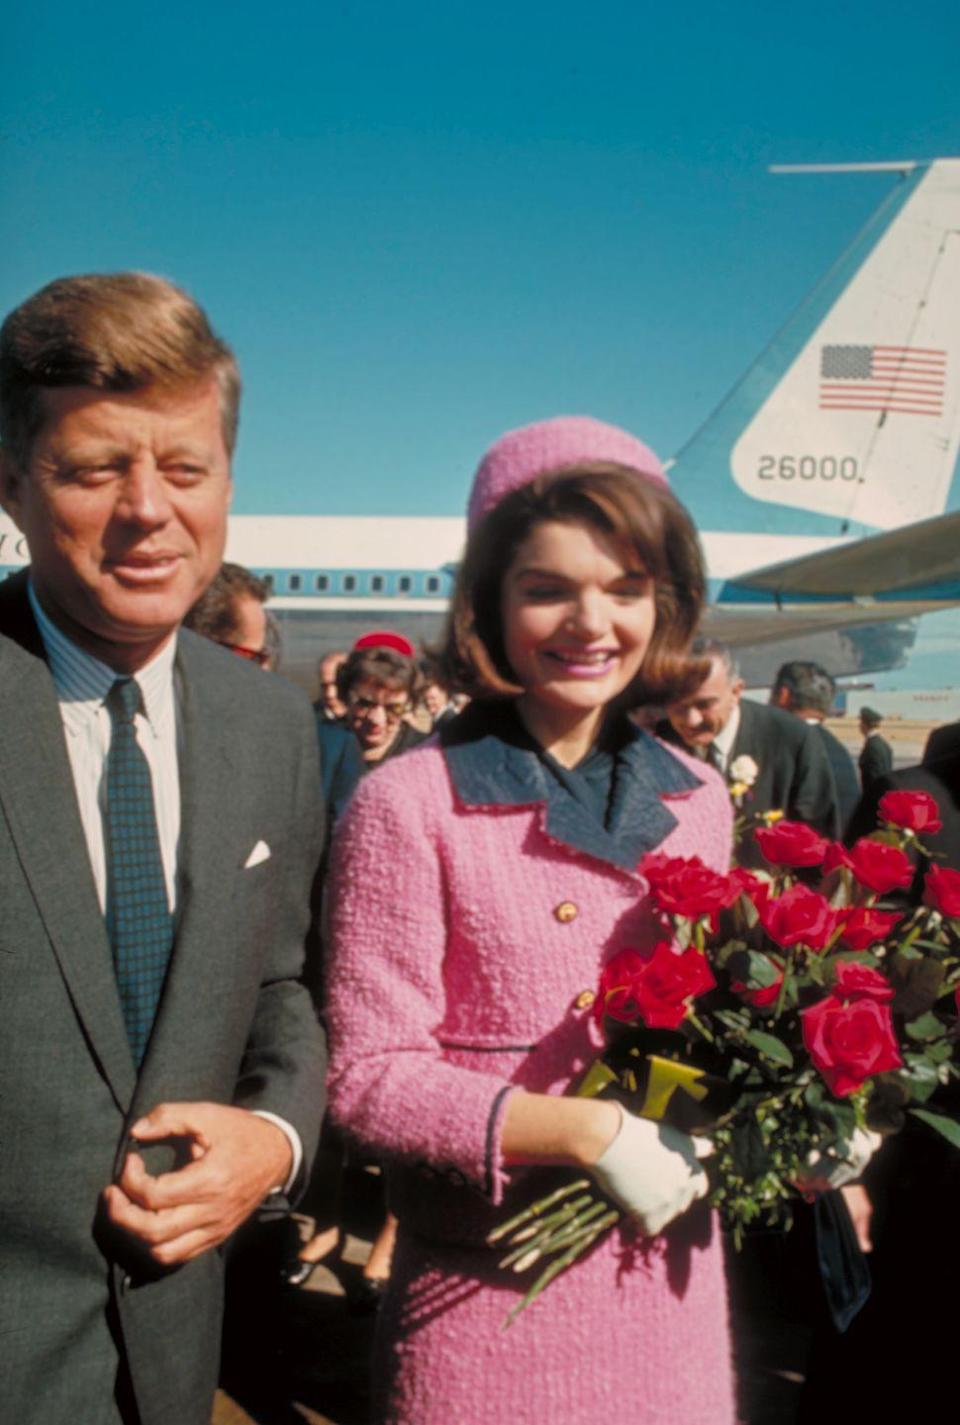 "<p>On the day President Kennedy was assassinated, Jackie arrived at the Dallas airport wearing a <a href=""https://www.townandcountrymag.com/society/politics/a22088447/jackie-kennedy-packing-list-jfk-assassination/"" rel=""nofollow noopener"" target=""_blank"" data-ylk=""slk:pink Chanel suit"" class=""link rapid-noclick-resp"">pink Chanel suit</a>. Despite the bloodstains covering it, she wore it when Vice President Lyndon Johnson was sworn in as President.</p>"